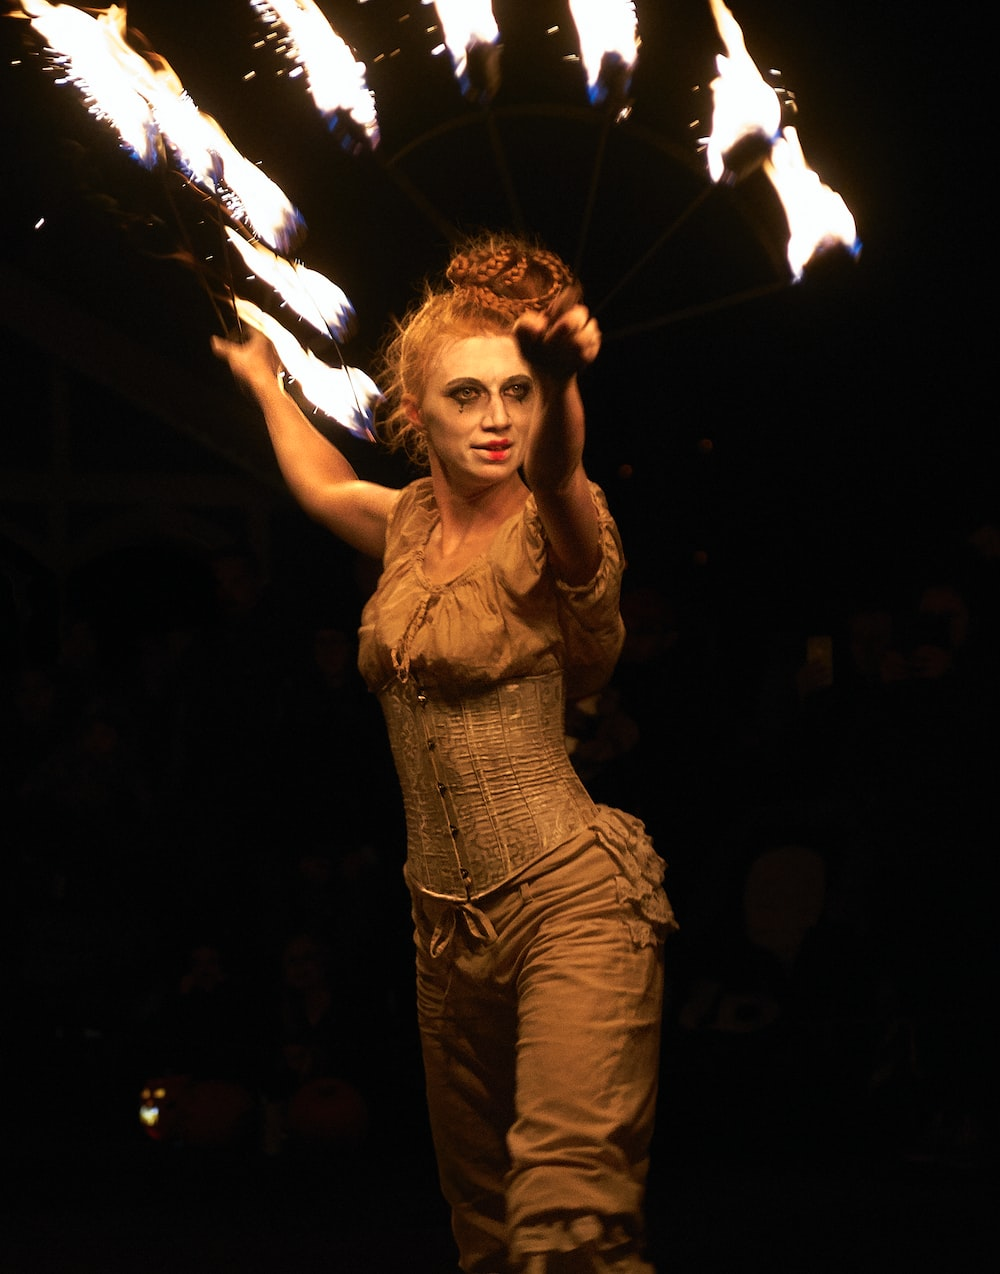 woman in costume holding stick with fire